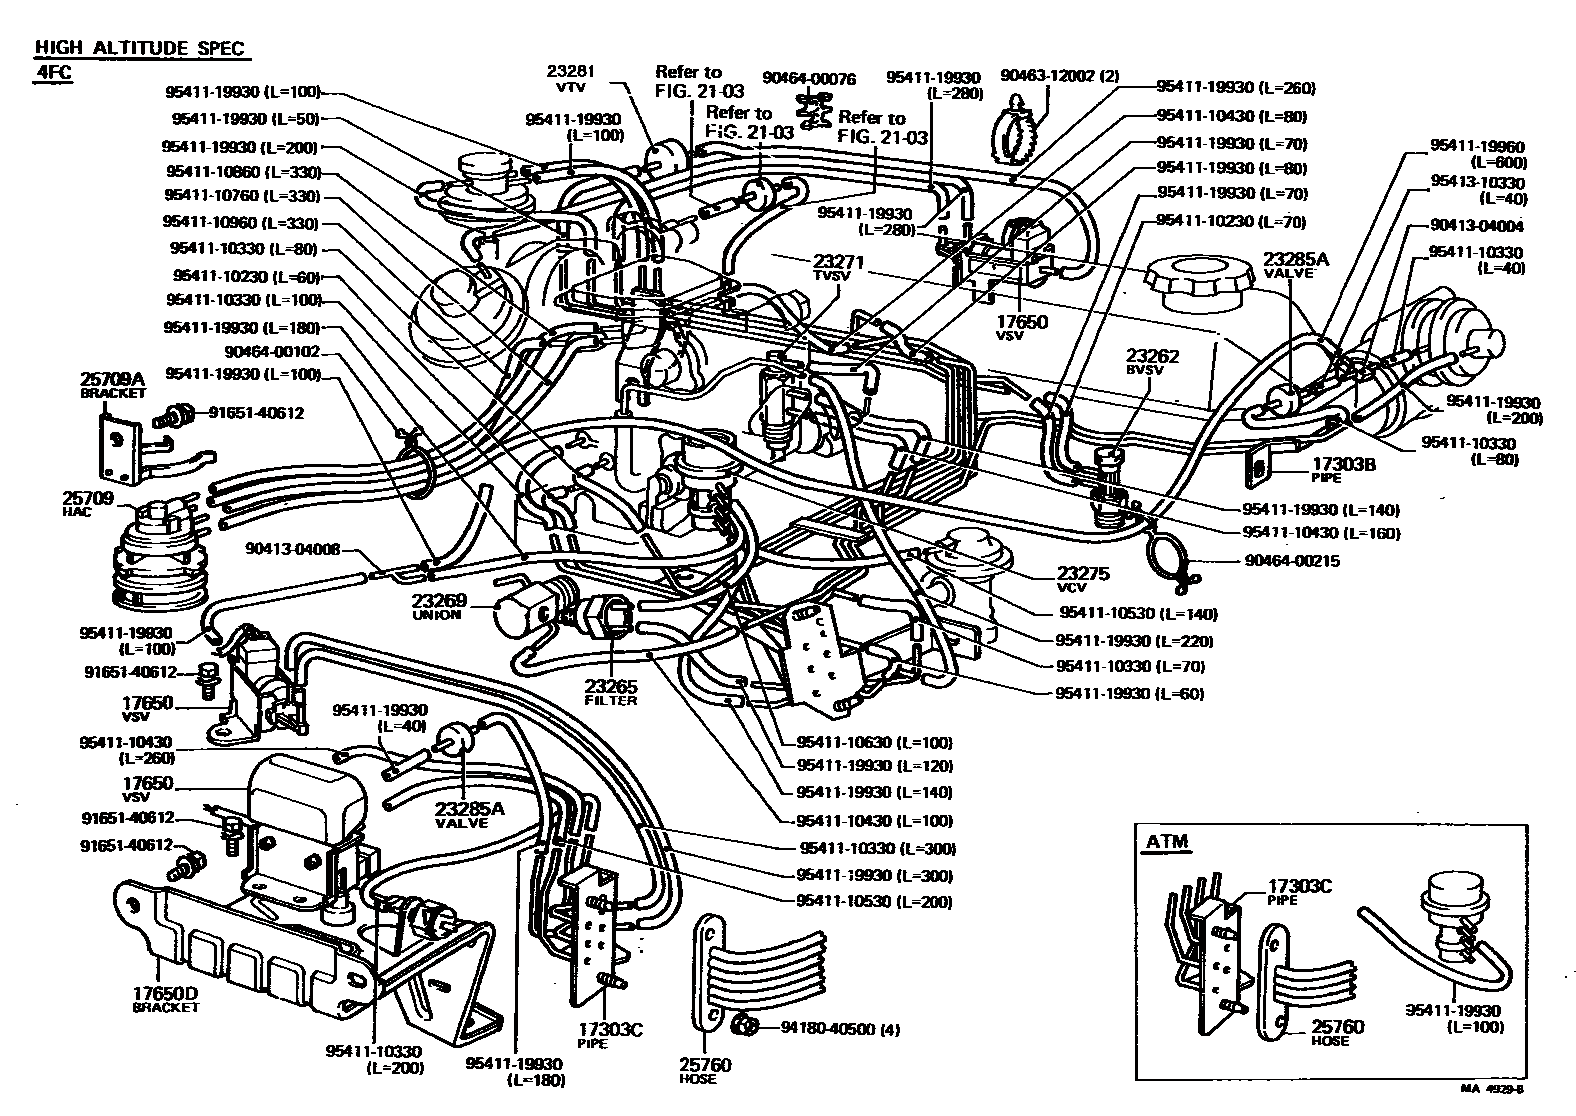 Wiring Diagram Database: 2004 Yukon Xl Brake Line Diagram